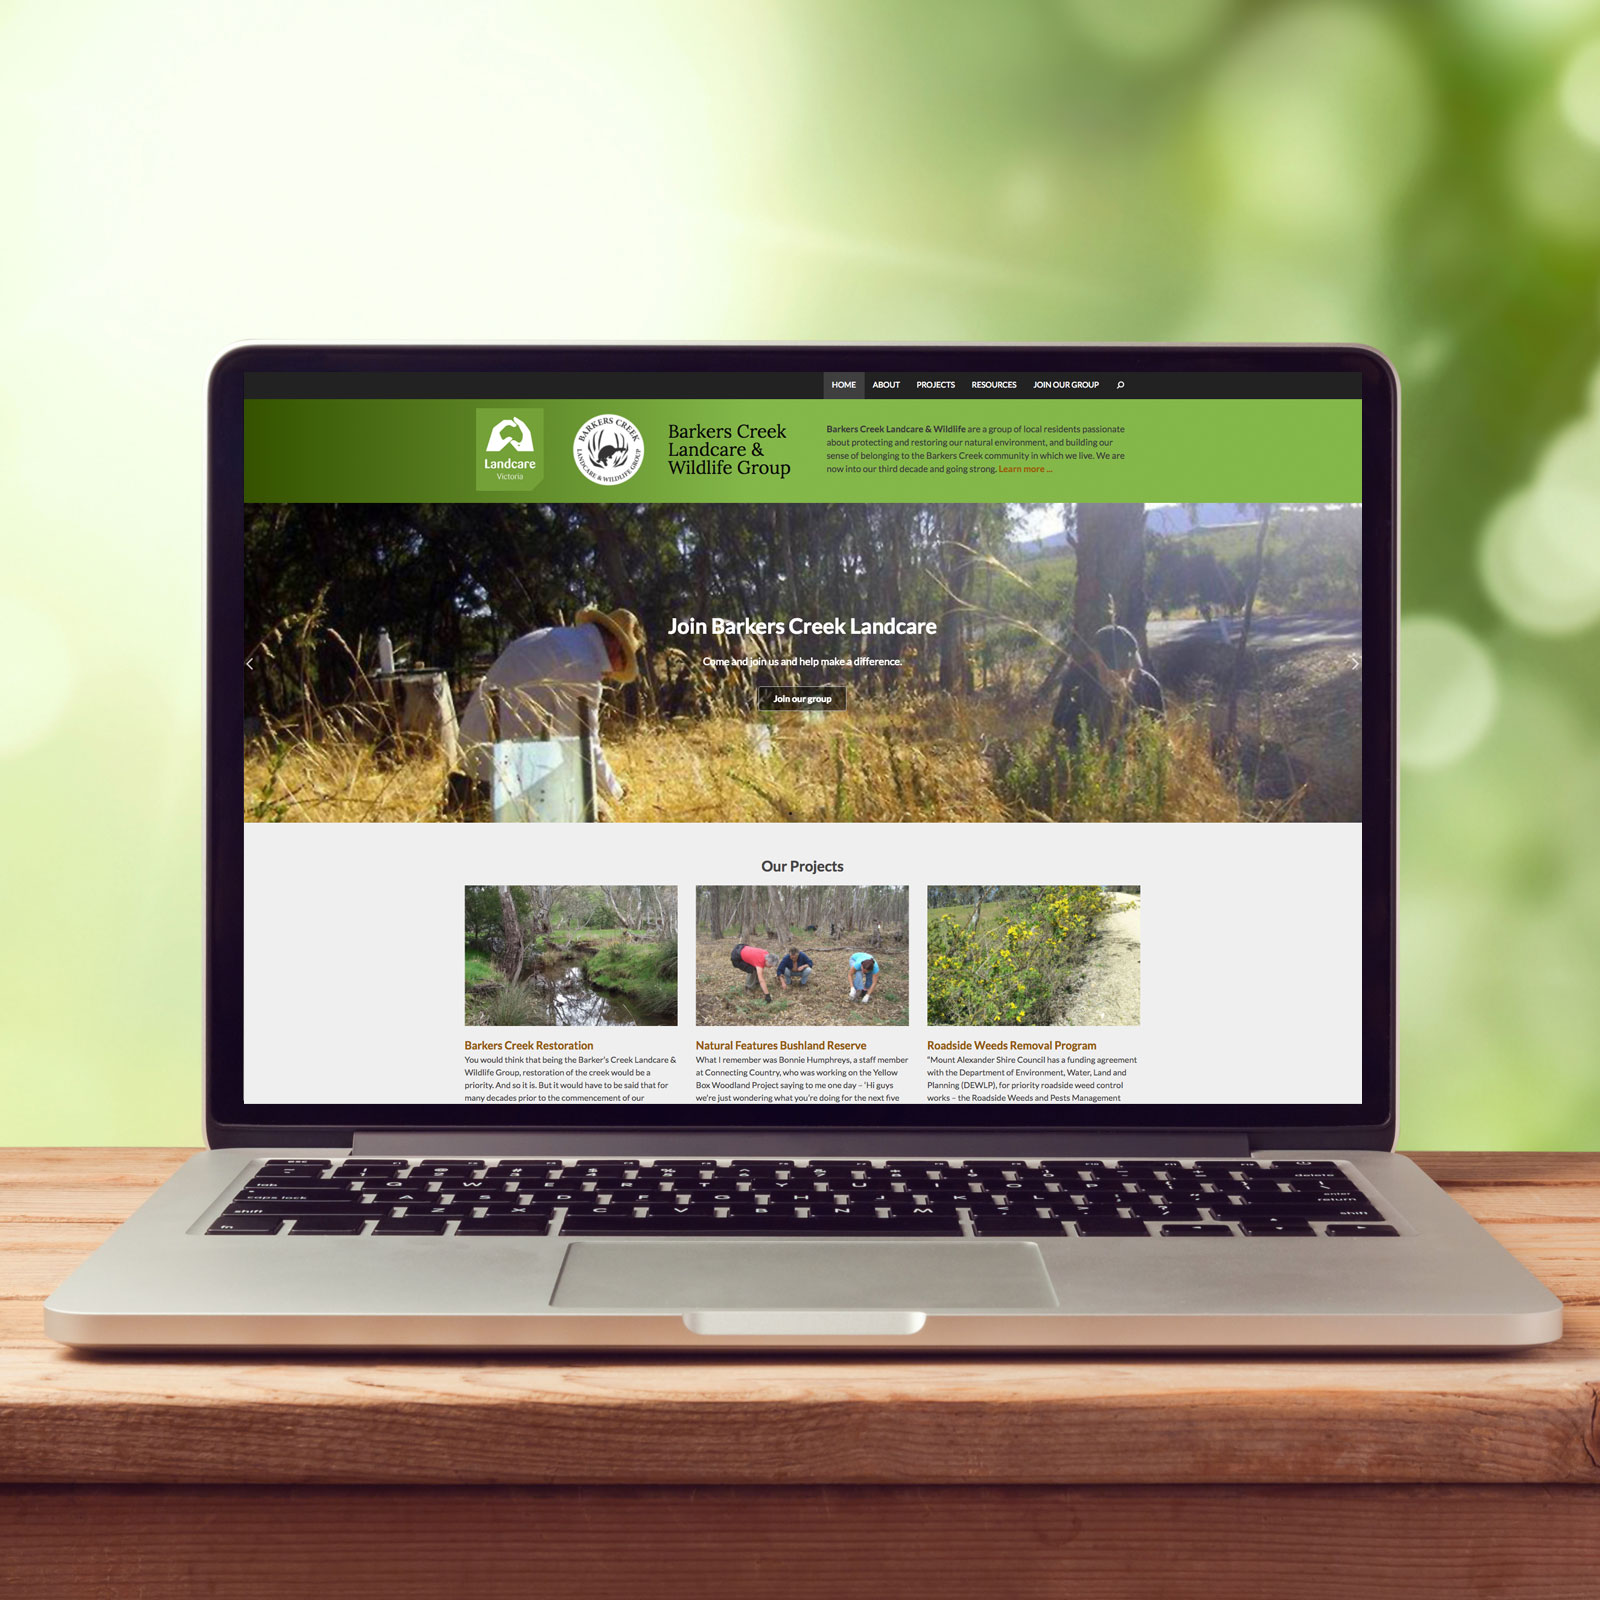 Barkers Creek Landcare website on a laptop